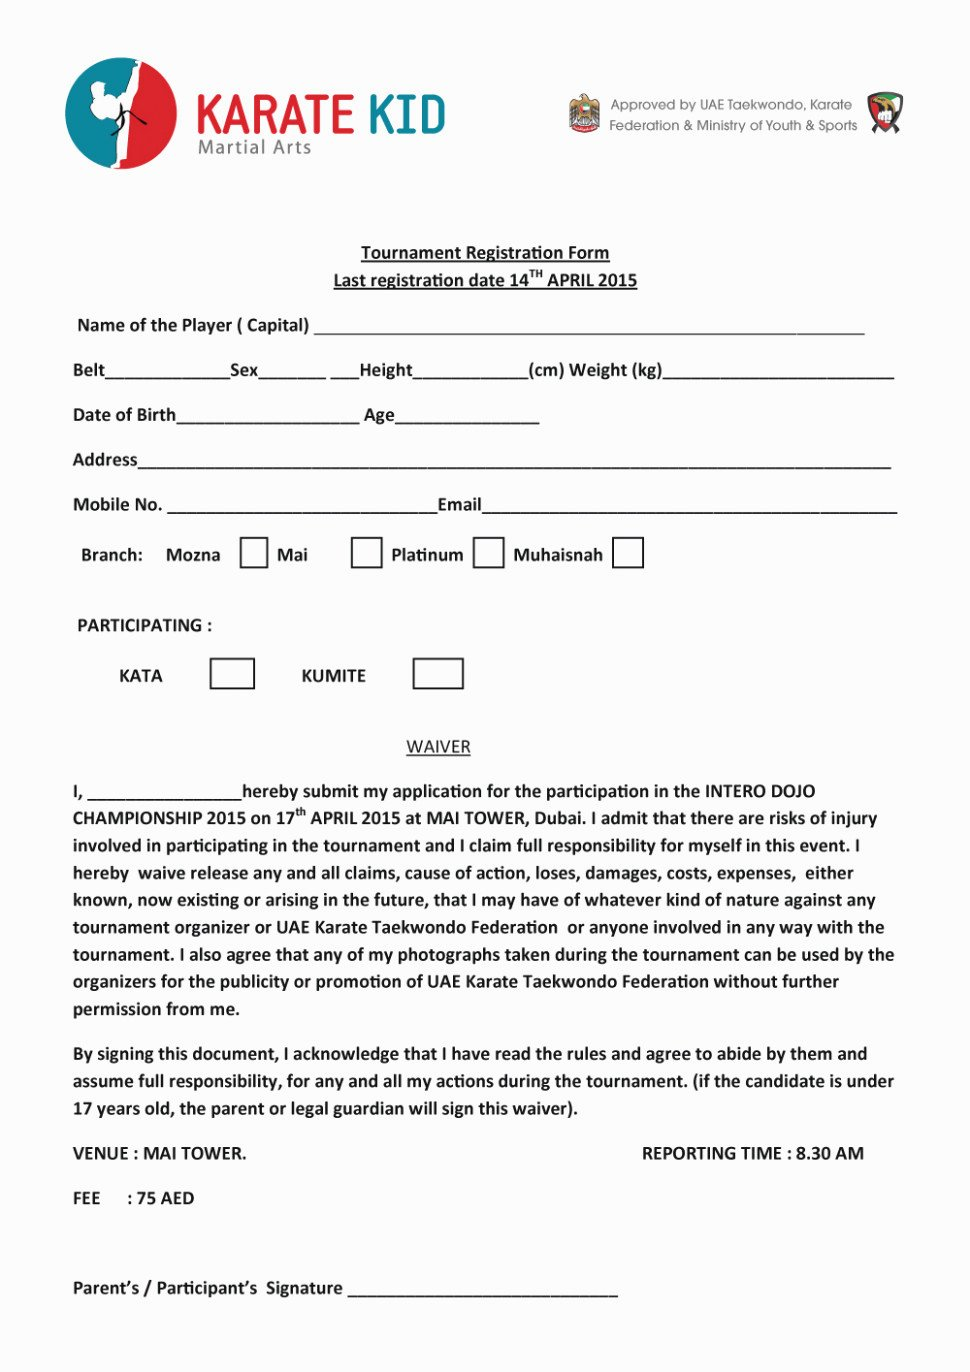 Basketball tournament Registration form Template Best Of 11 Things You Probably Didn T Know About